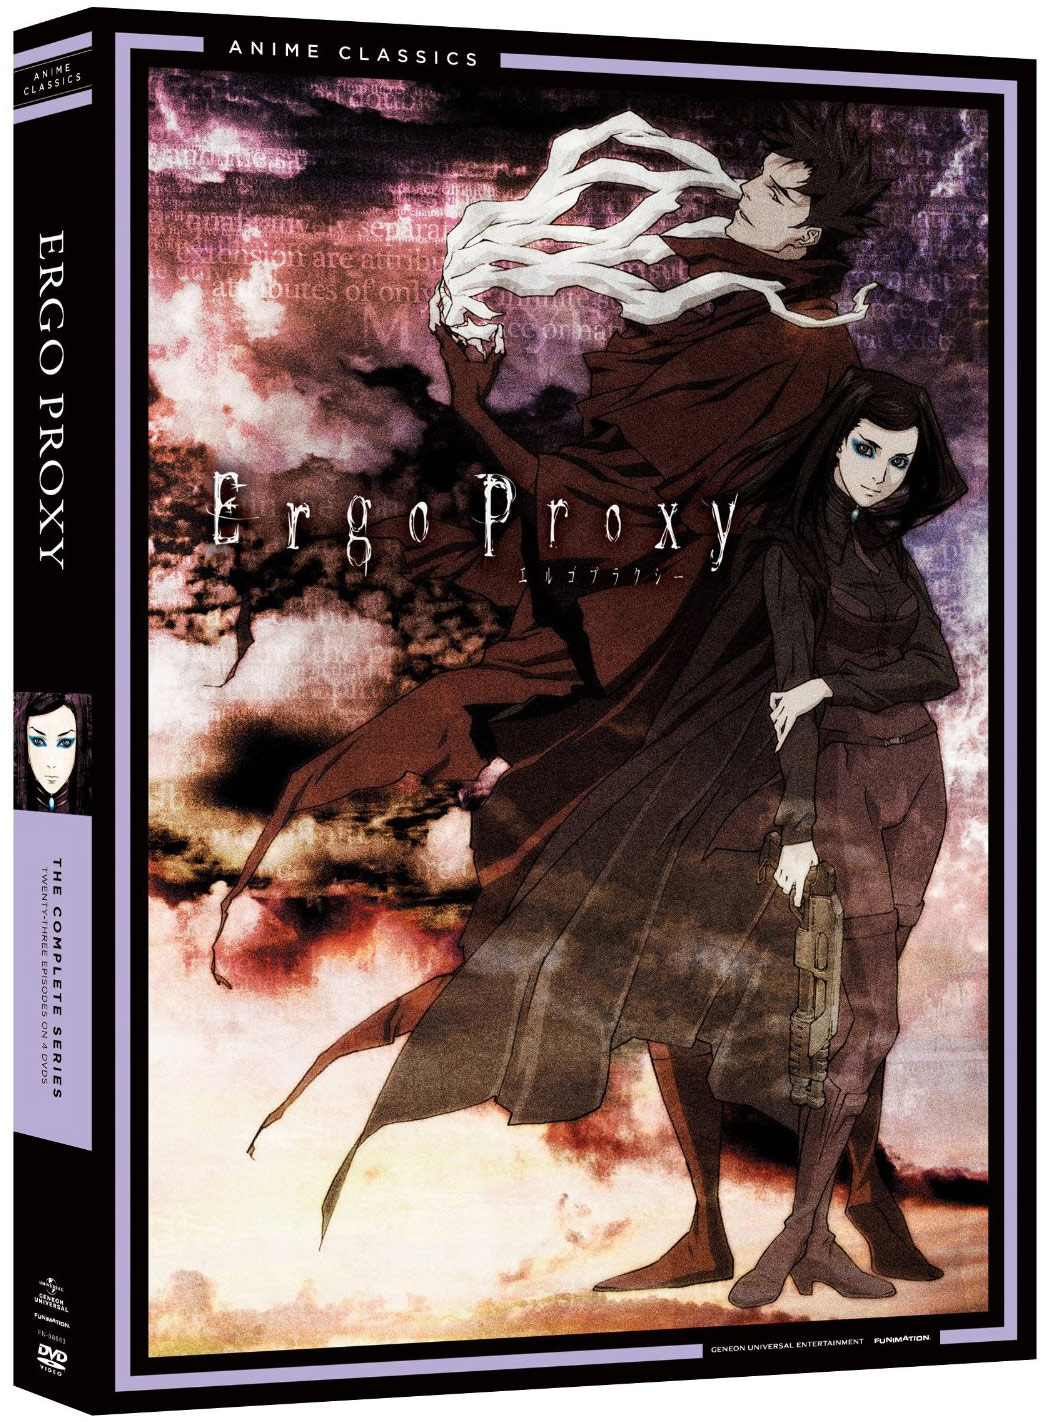 Ergo Proxy DVD Complete Series (Amazon)